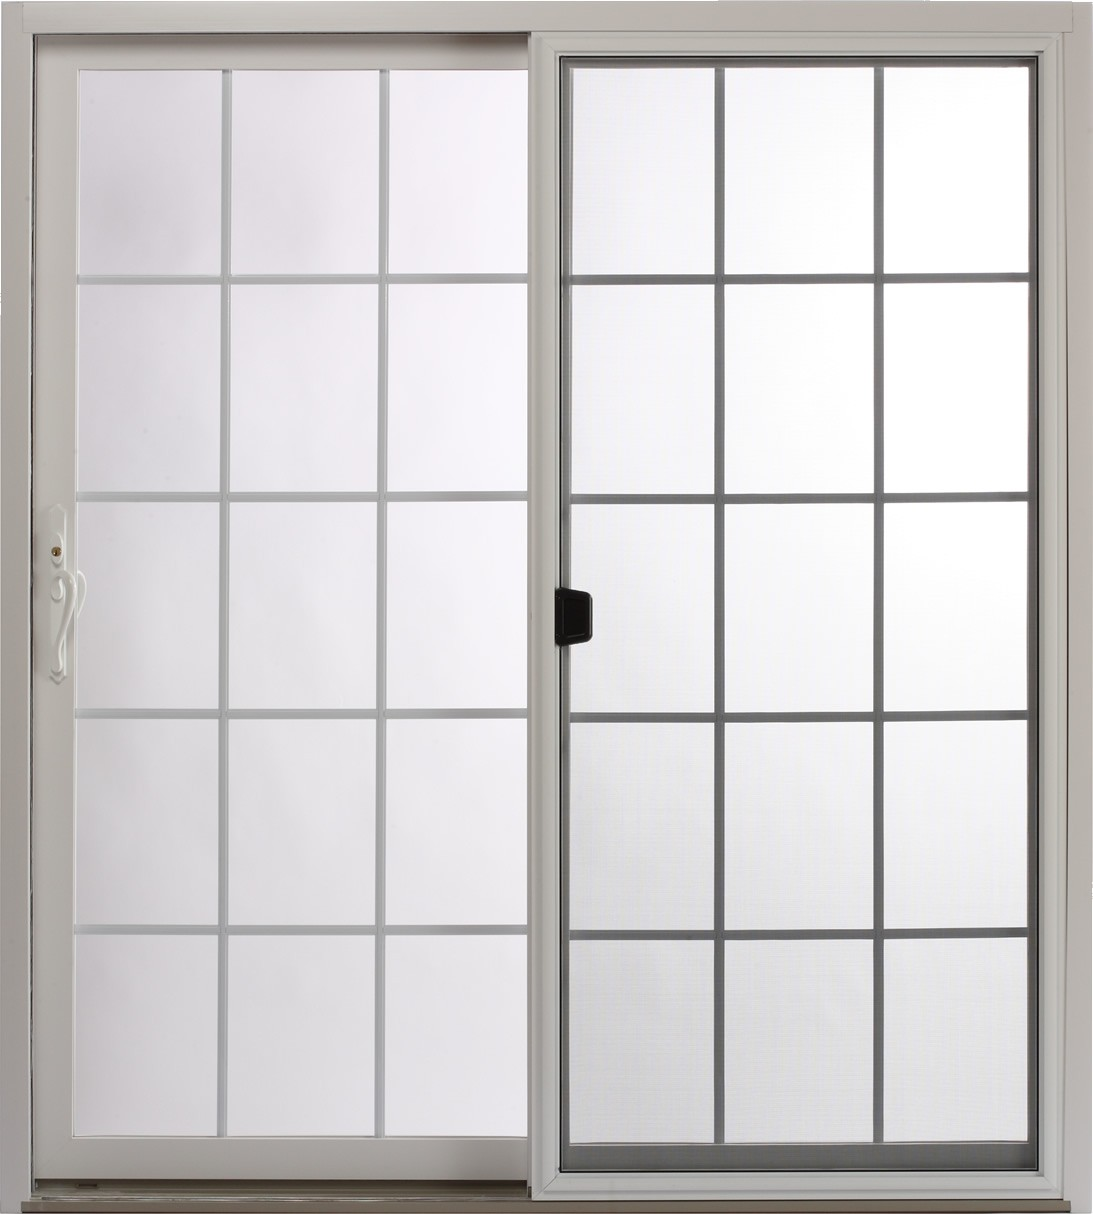 Fiberglass Sliding Door Solutions Enerlux Windows Amp Doors